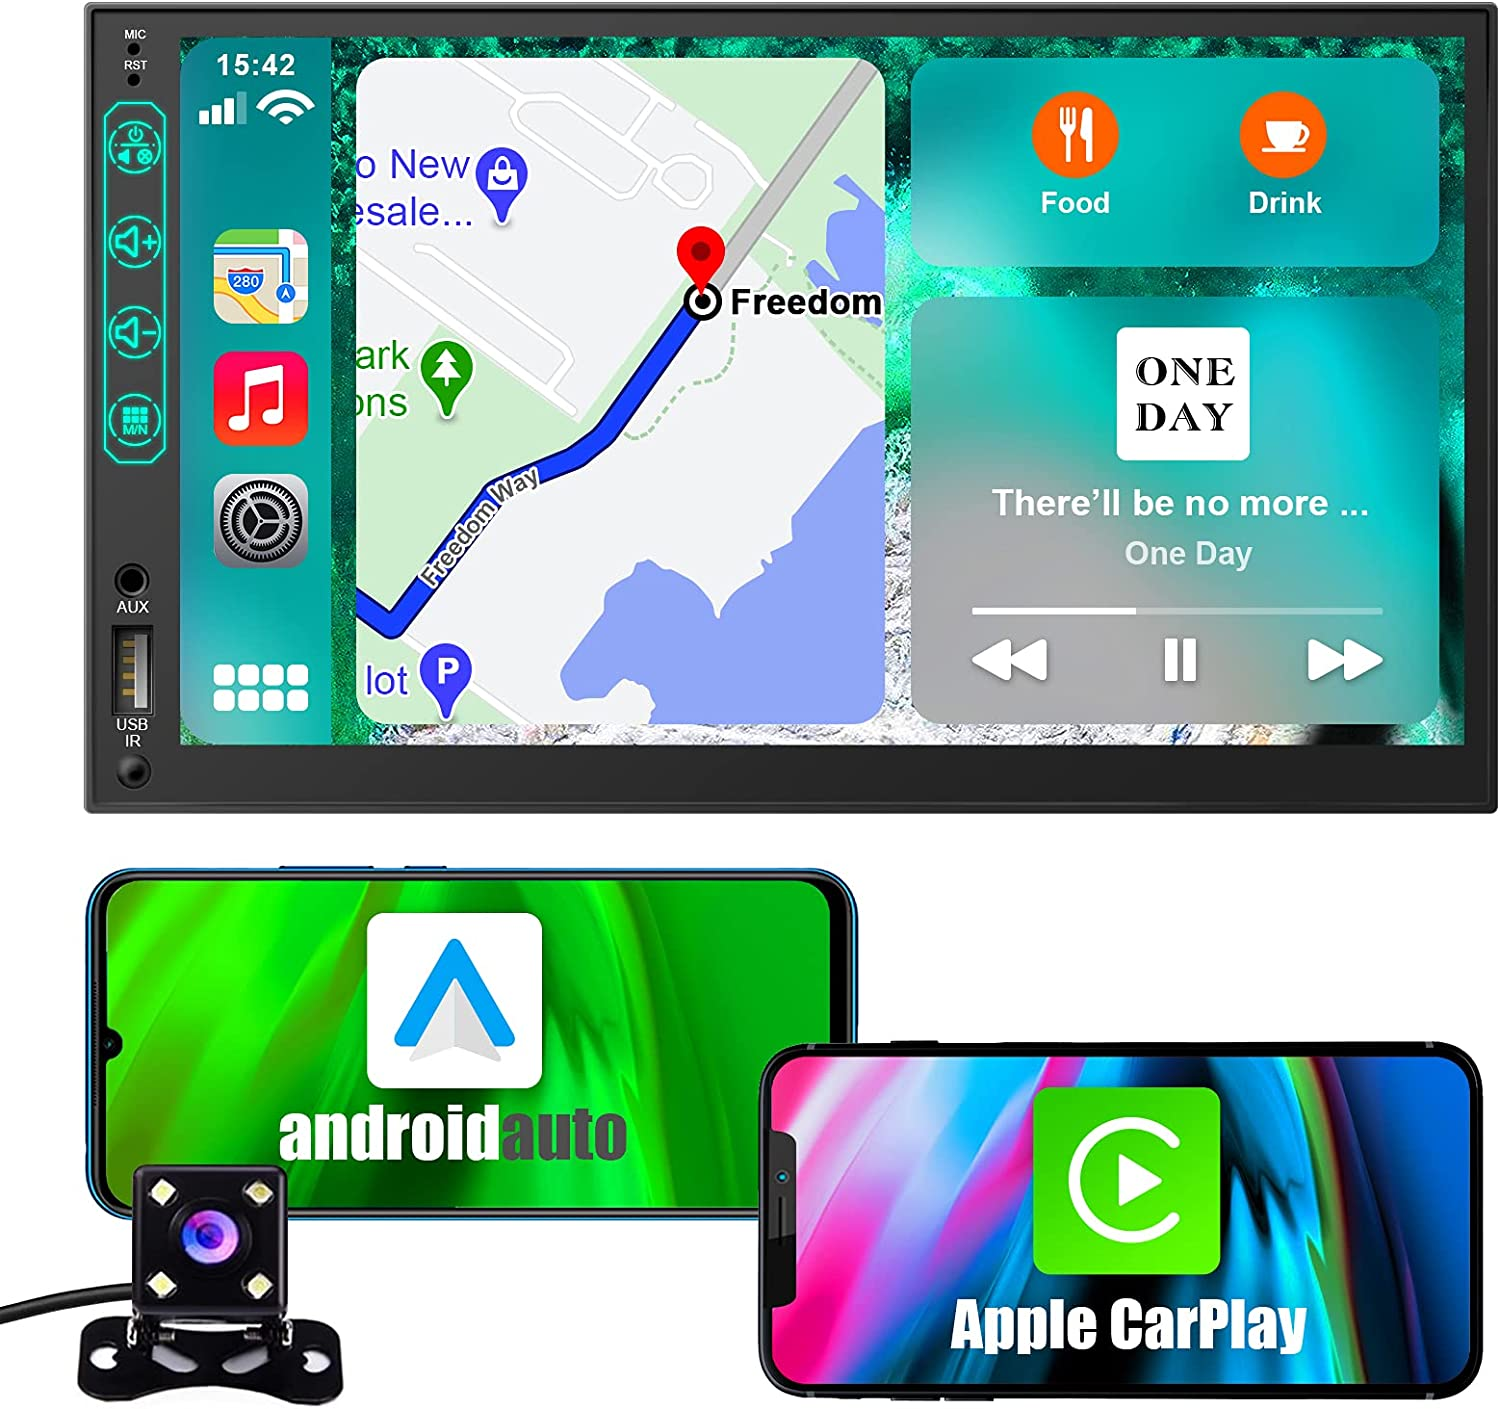 AVBONG Car Stereo Compatible with Apple Carplay and Android Auto, 7-inch Double Din Car Radio, Supports for Bluetooth/Touch Screen/Reversing Camera/Navigation/Voice Assistant/AM/FM/Music